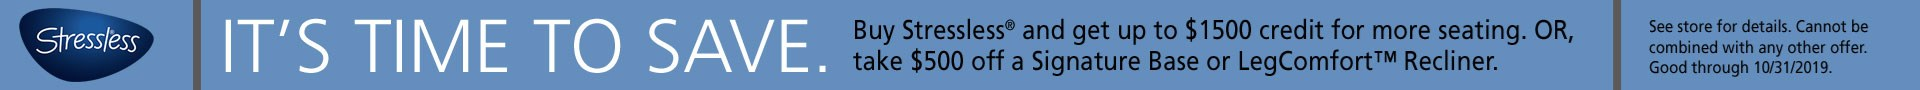 Buy Stressless and get up to $1500 credit for more seating, or take $500 off a signature base or LegComfort recliner; see store for details